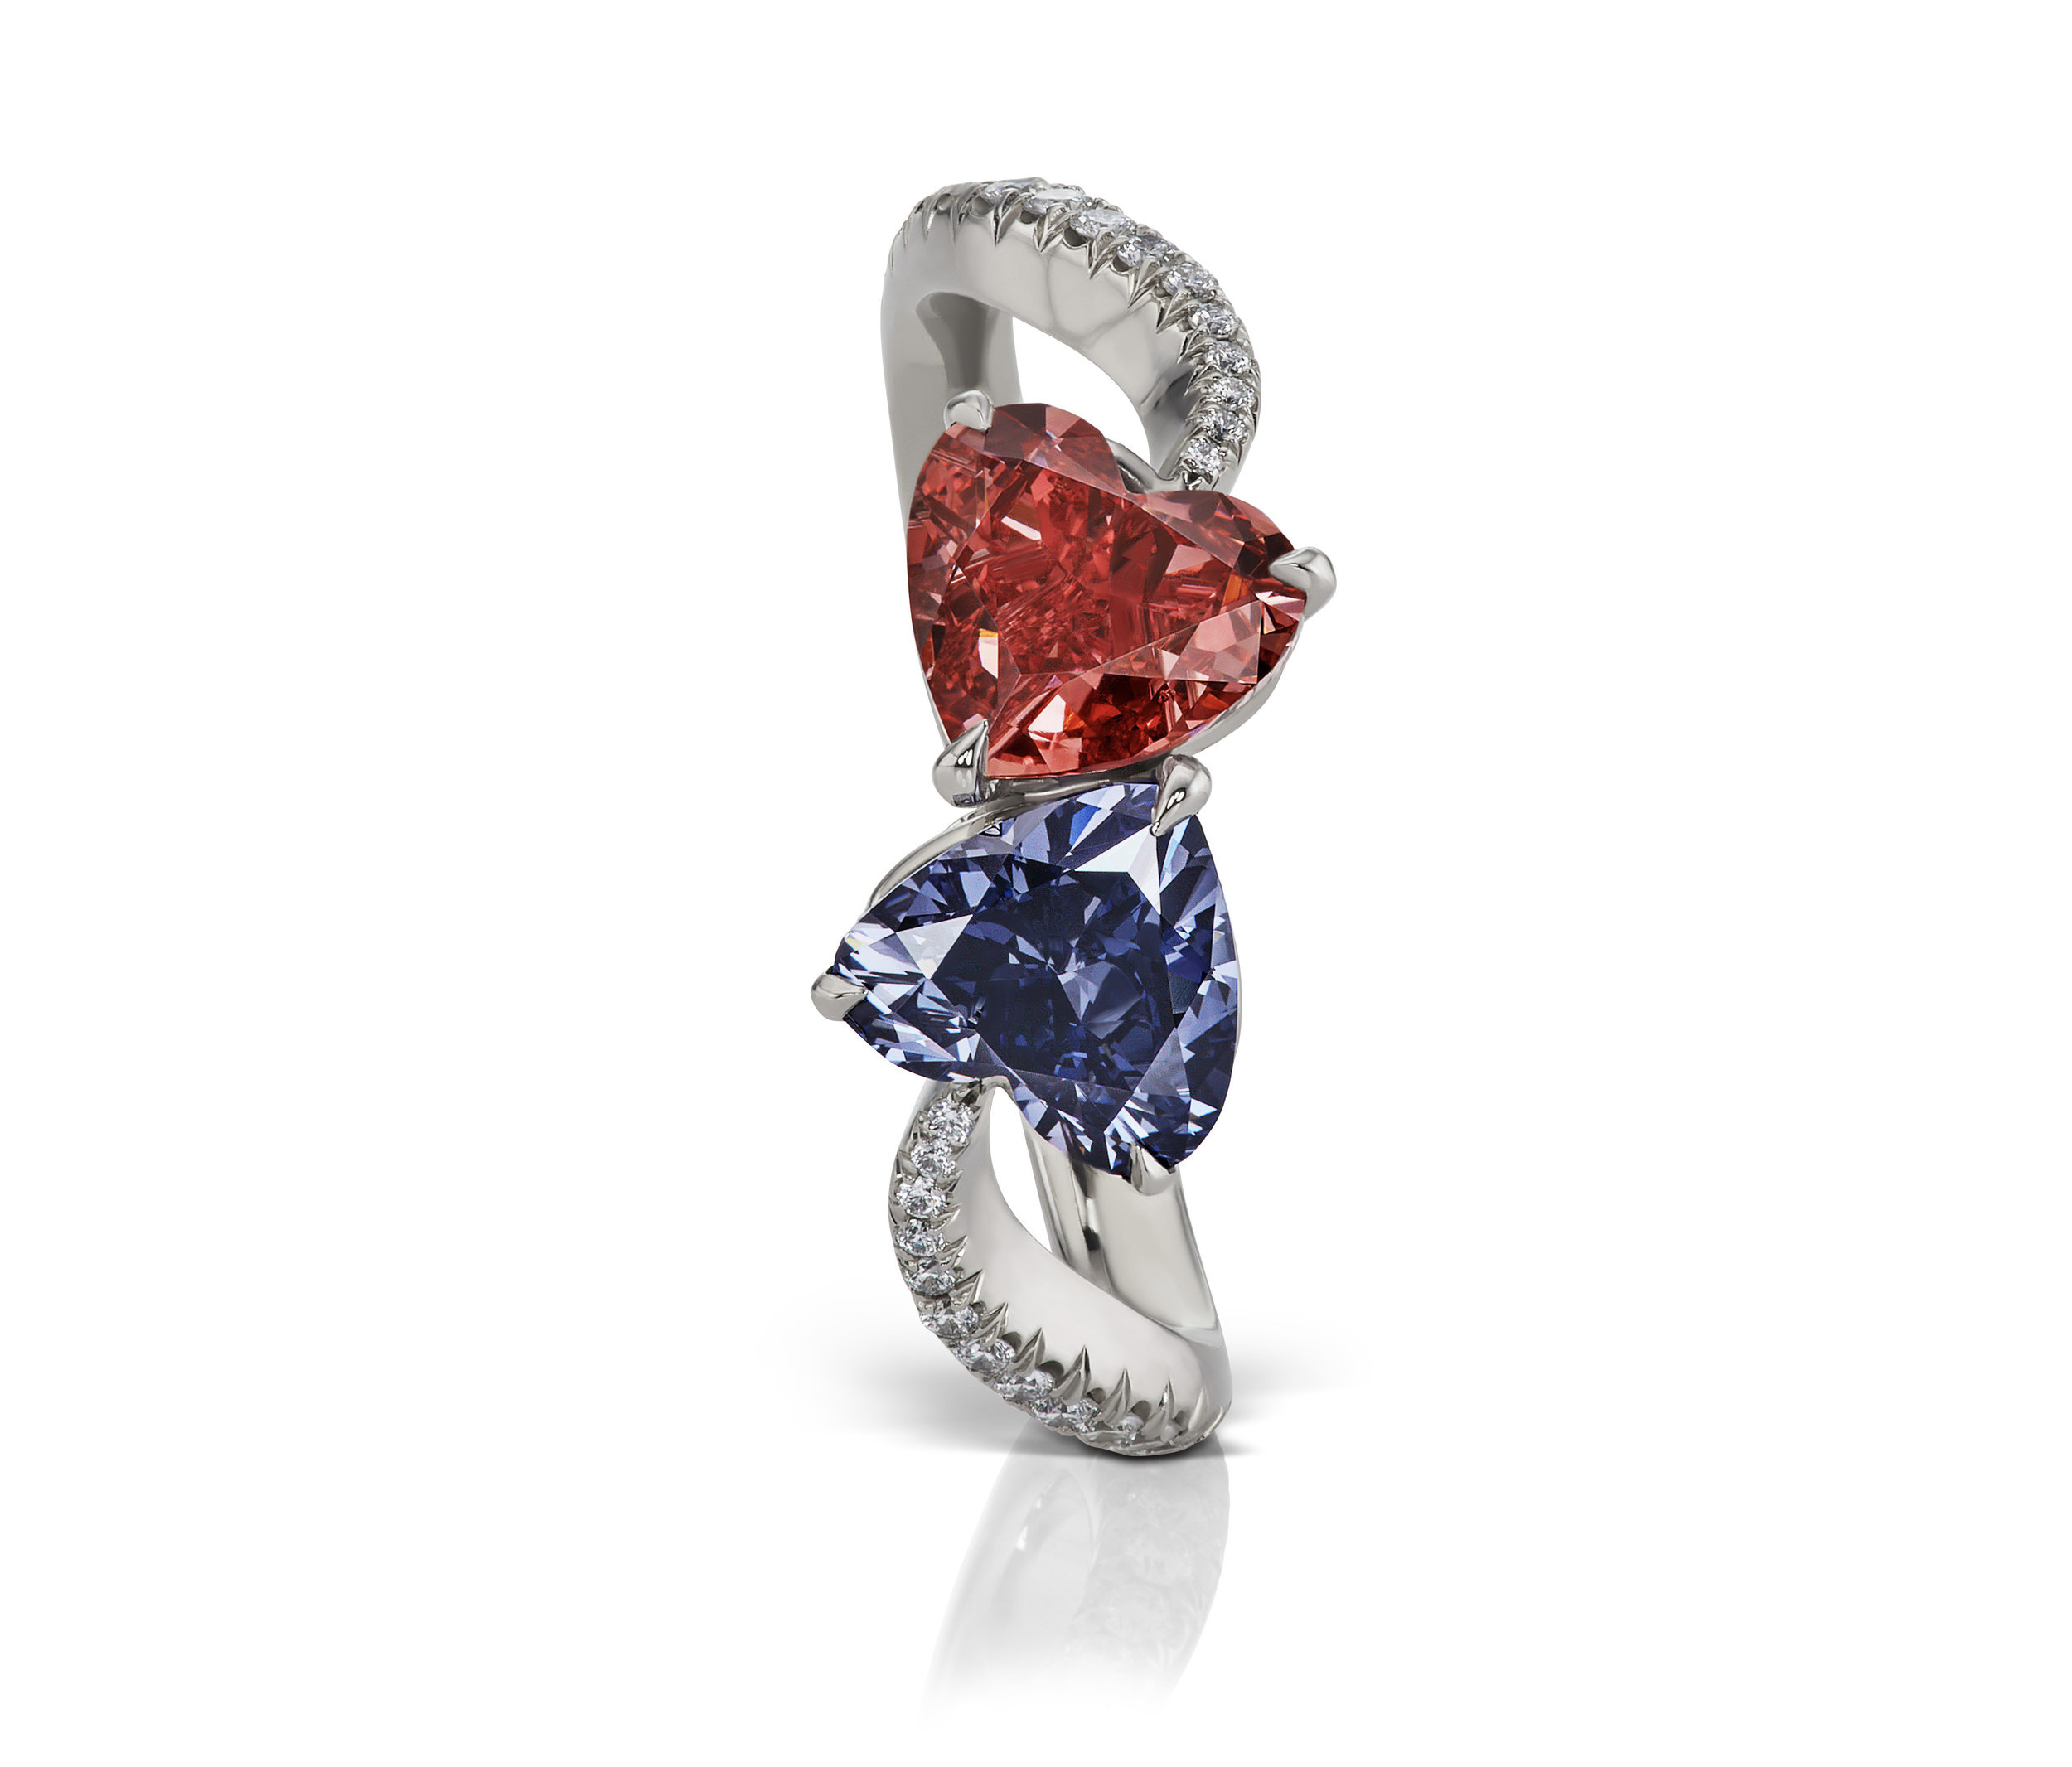 Twin Heart ring featuring a 0.75 carat fancy red SI2 (GIA) and 0.78 carat Fancy deep bluish violet. Designed by Scott West